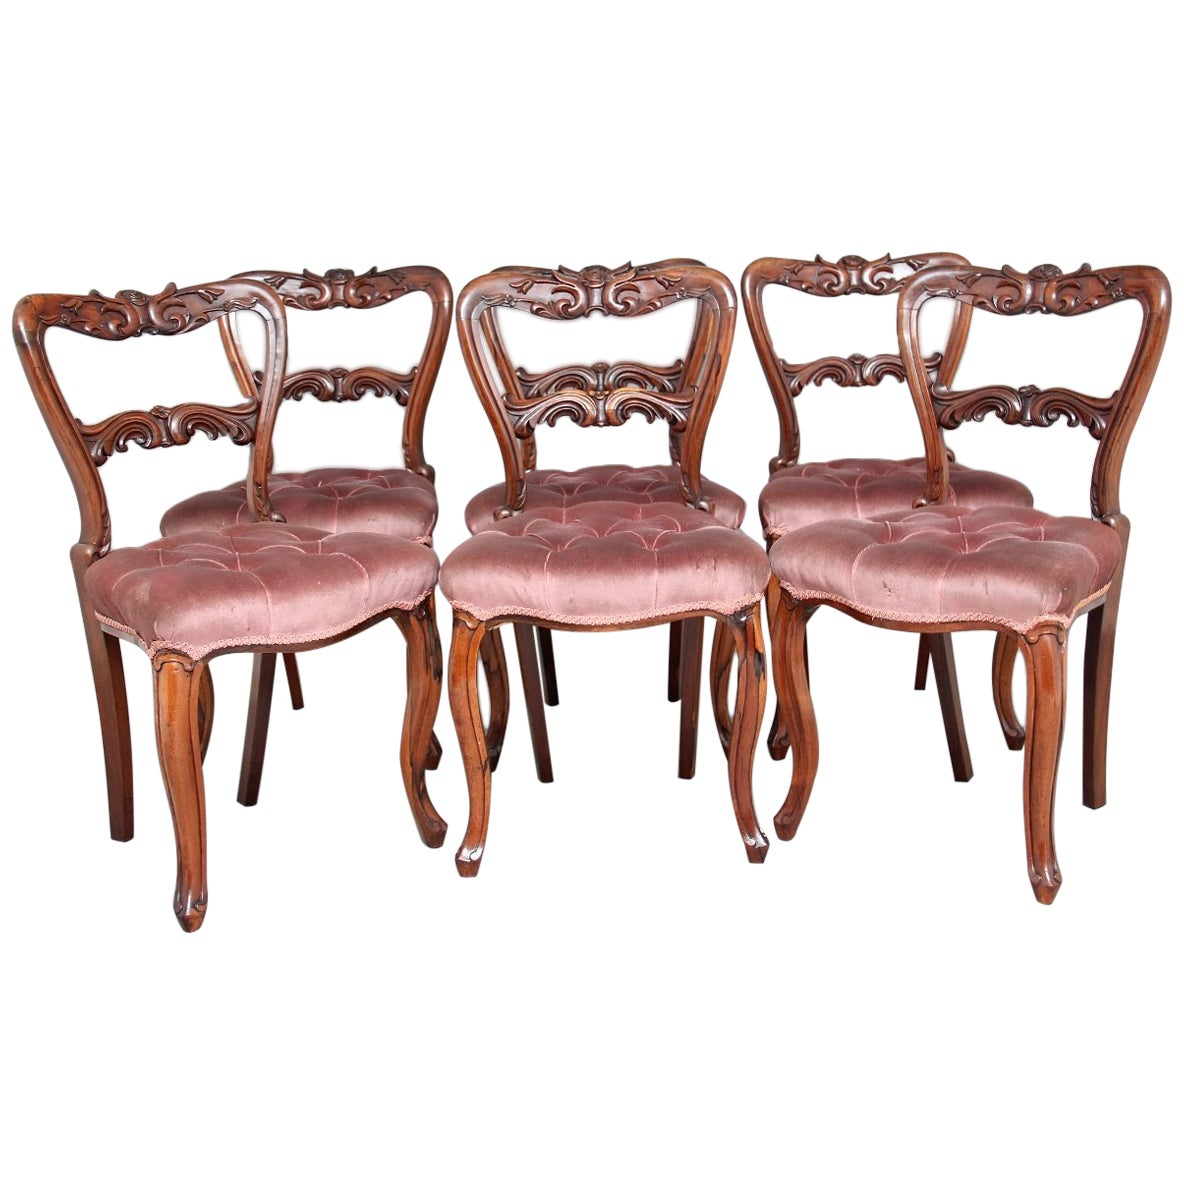 Set of Six 19th Century Rosewood Dining Chairs